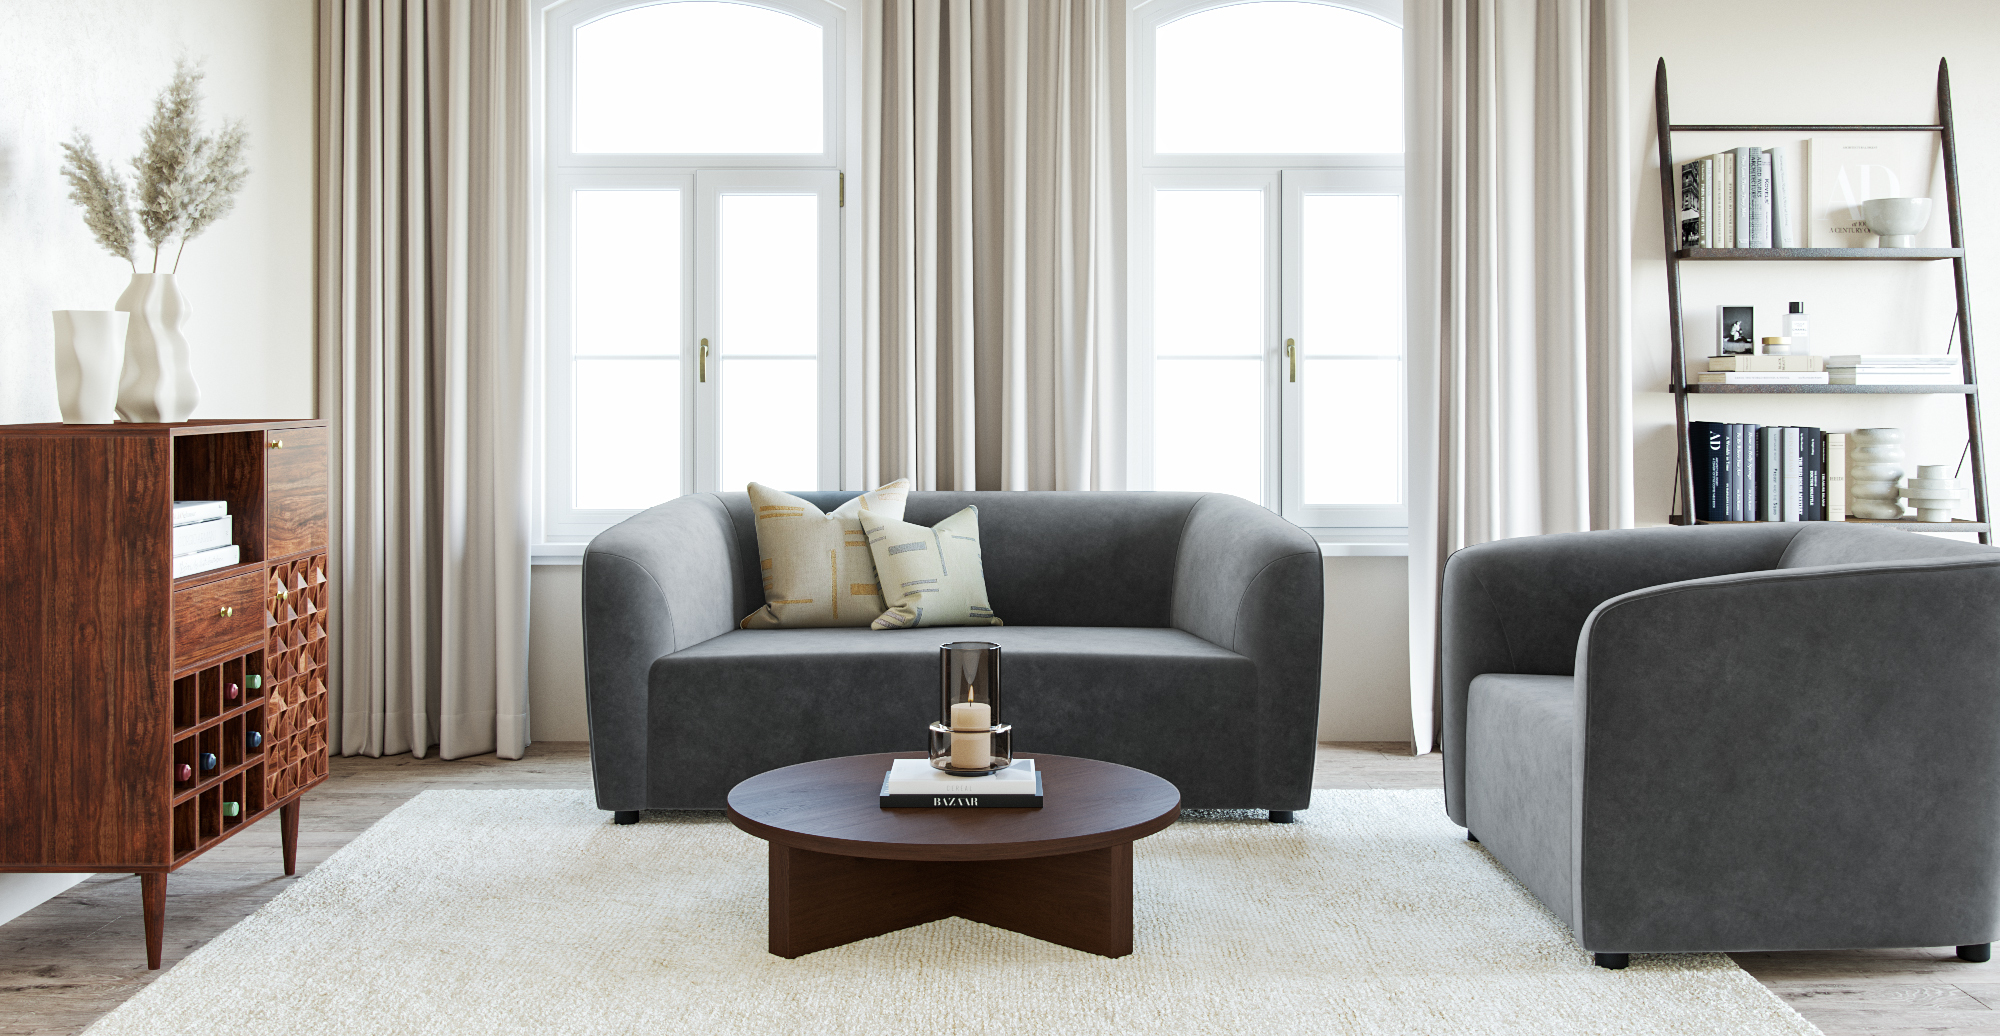 Brosa Henley Low Set Coffee Table styled in mid-century modern living room